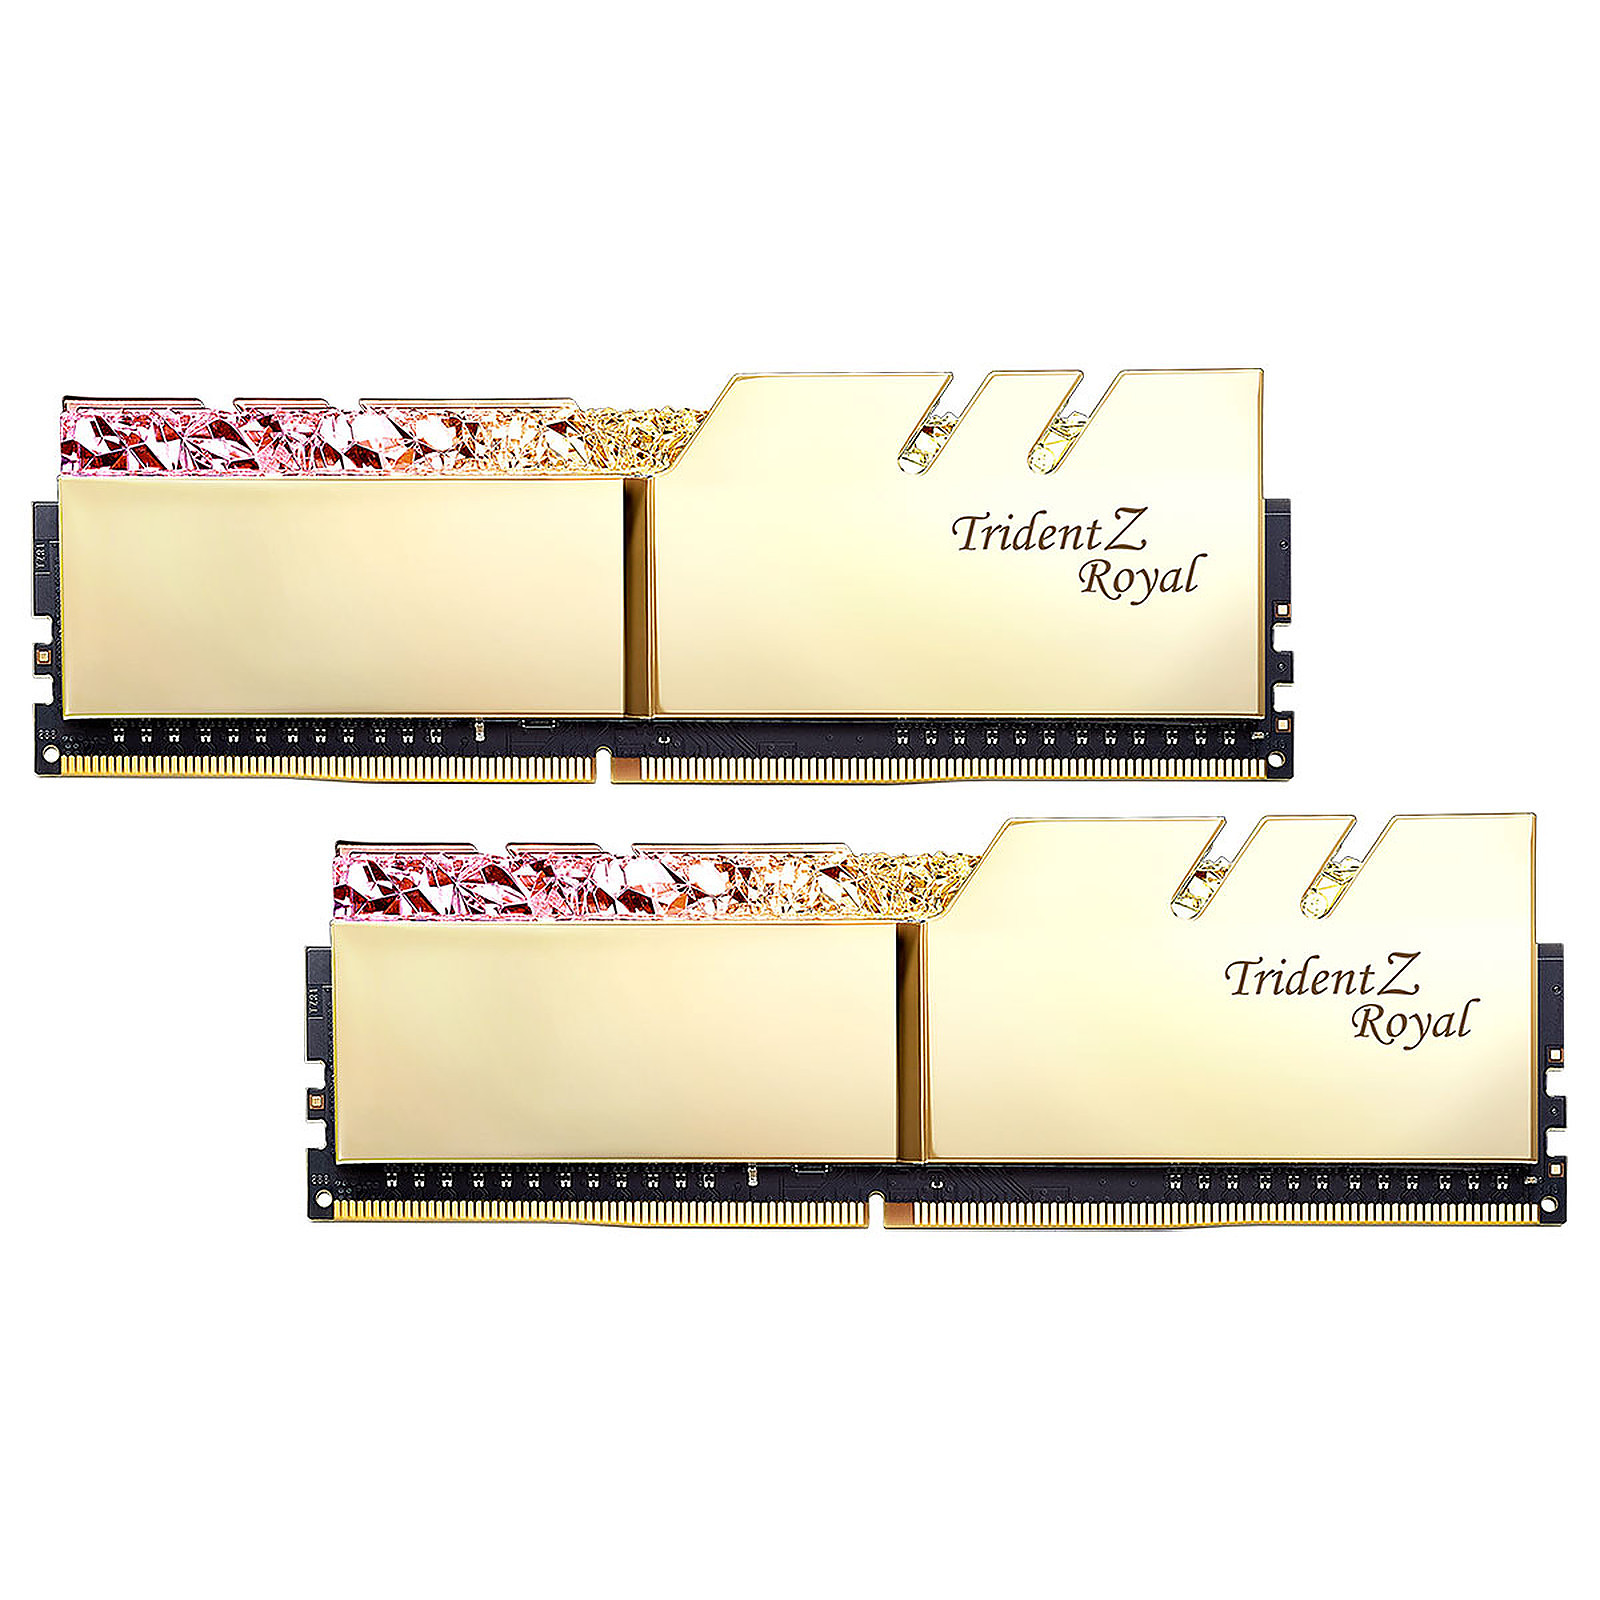 G.Skill Trident Z Royal 32 Go (2 x 16 Go) DDR4 3600 MHz CL19 - Or